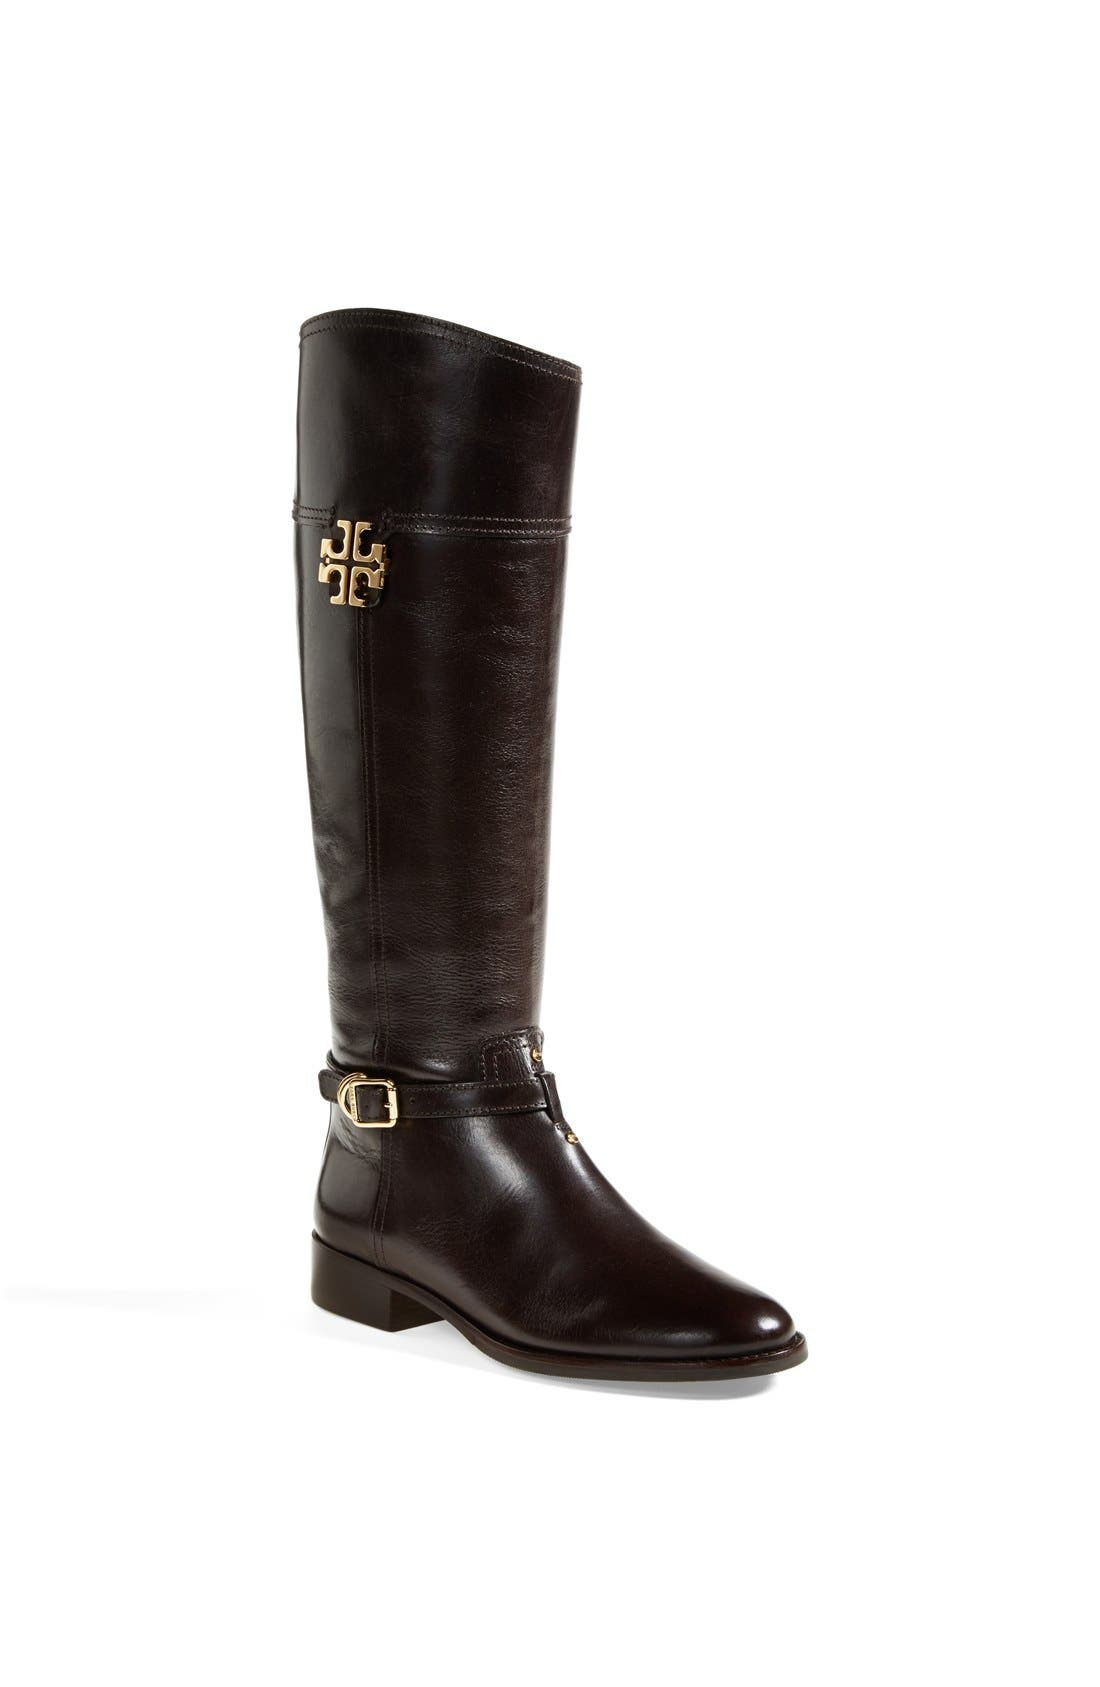 Alternate Image 1 Selected - Tory Burch 'Eloise' Riding Boot